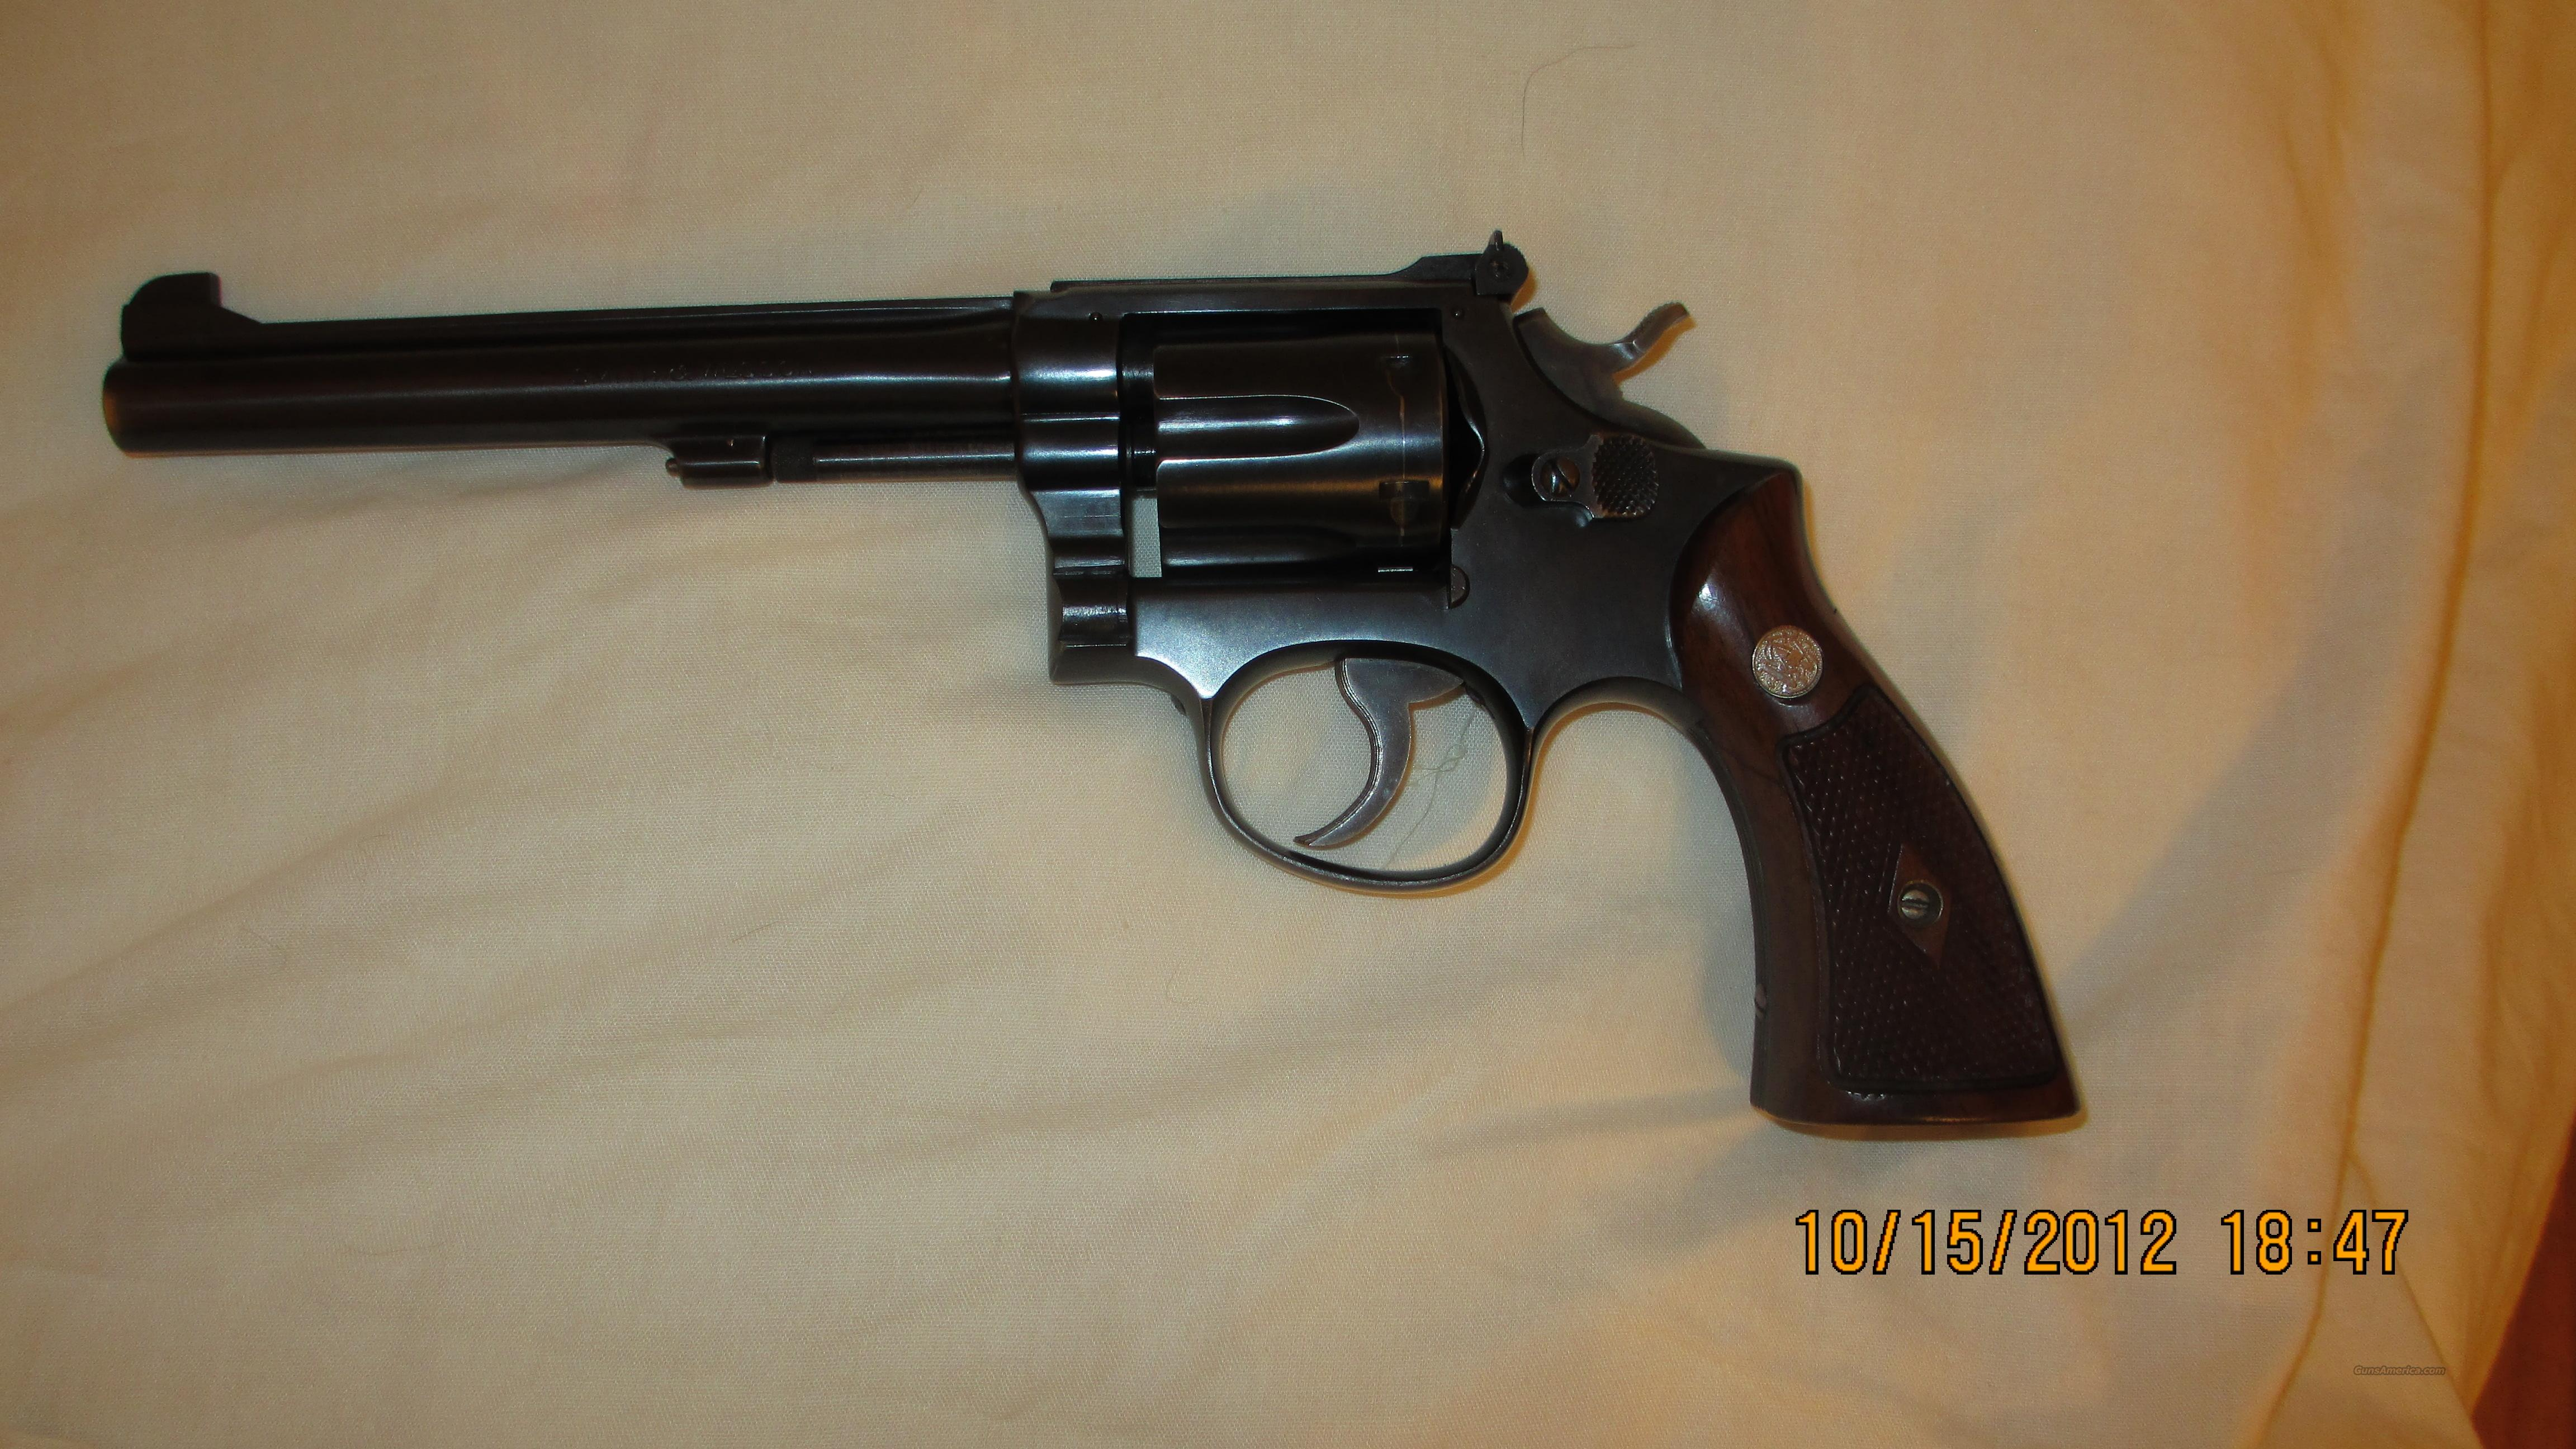 K-22 SMITH AND WESSON  Guns > Pistols > Smith & Wesson Revolvers > Full Frame Revolver